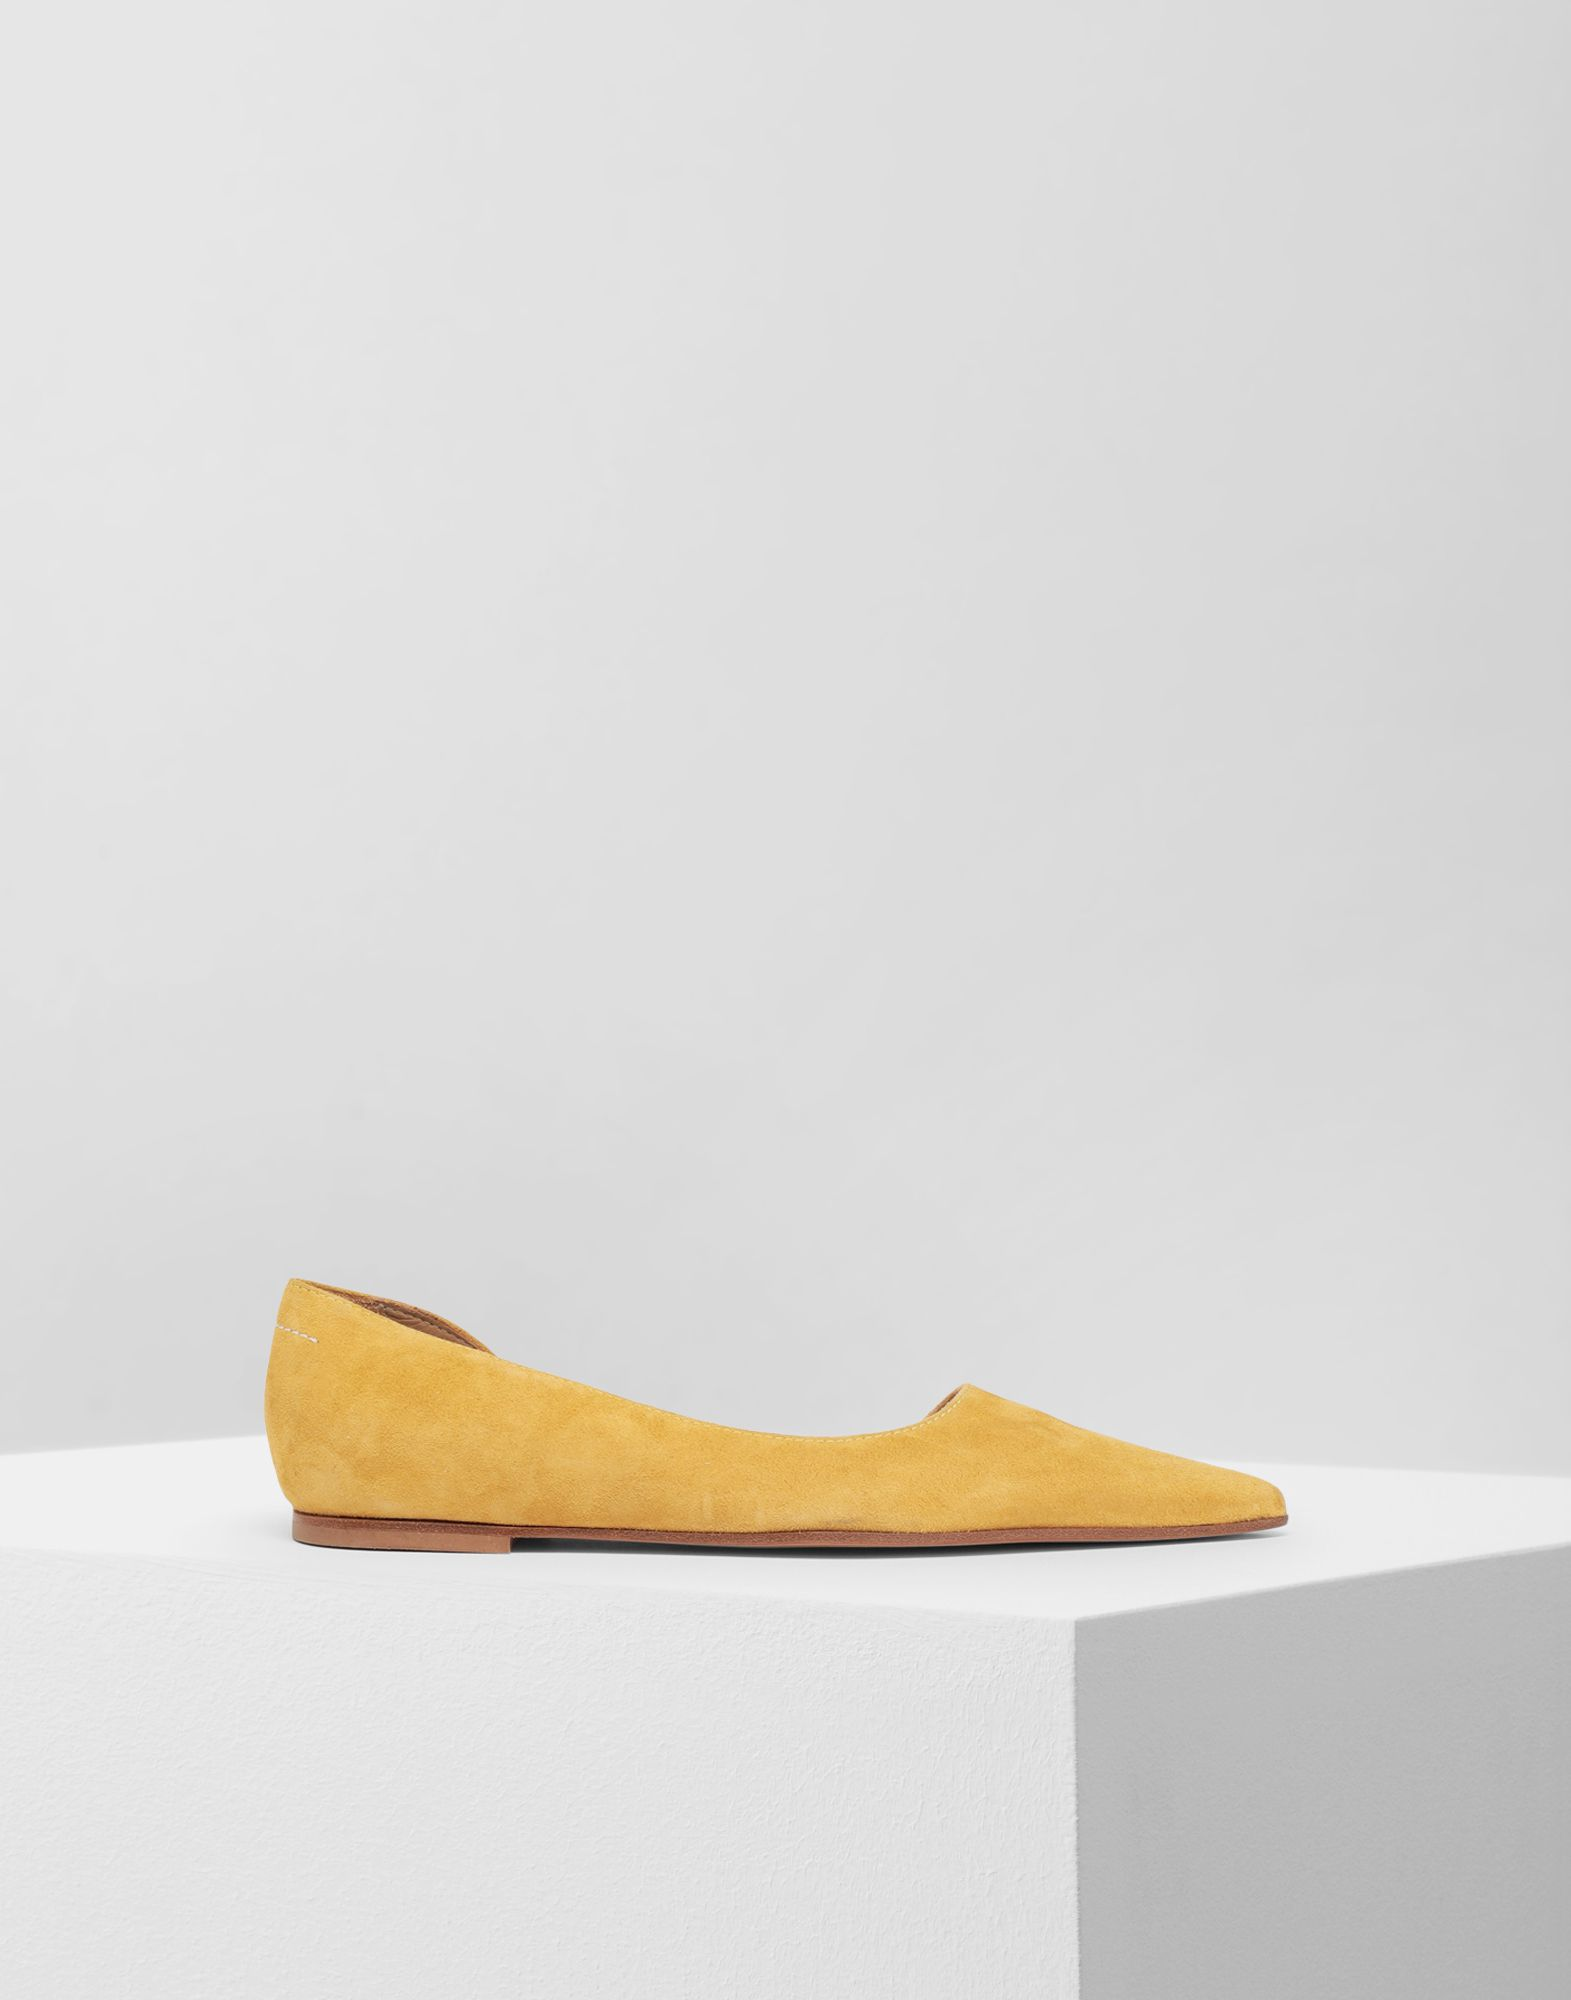 MM6 MAISON MARGIELA Leather flats Ballet flats Woman f